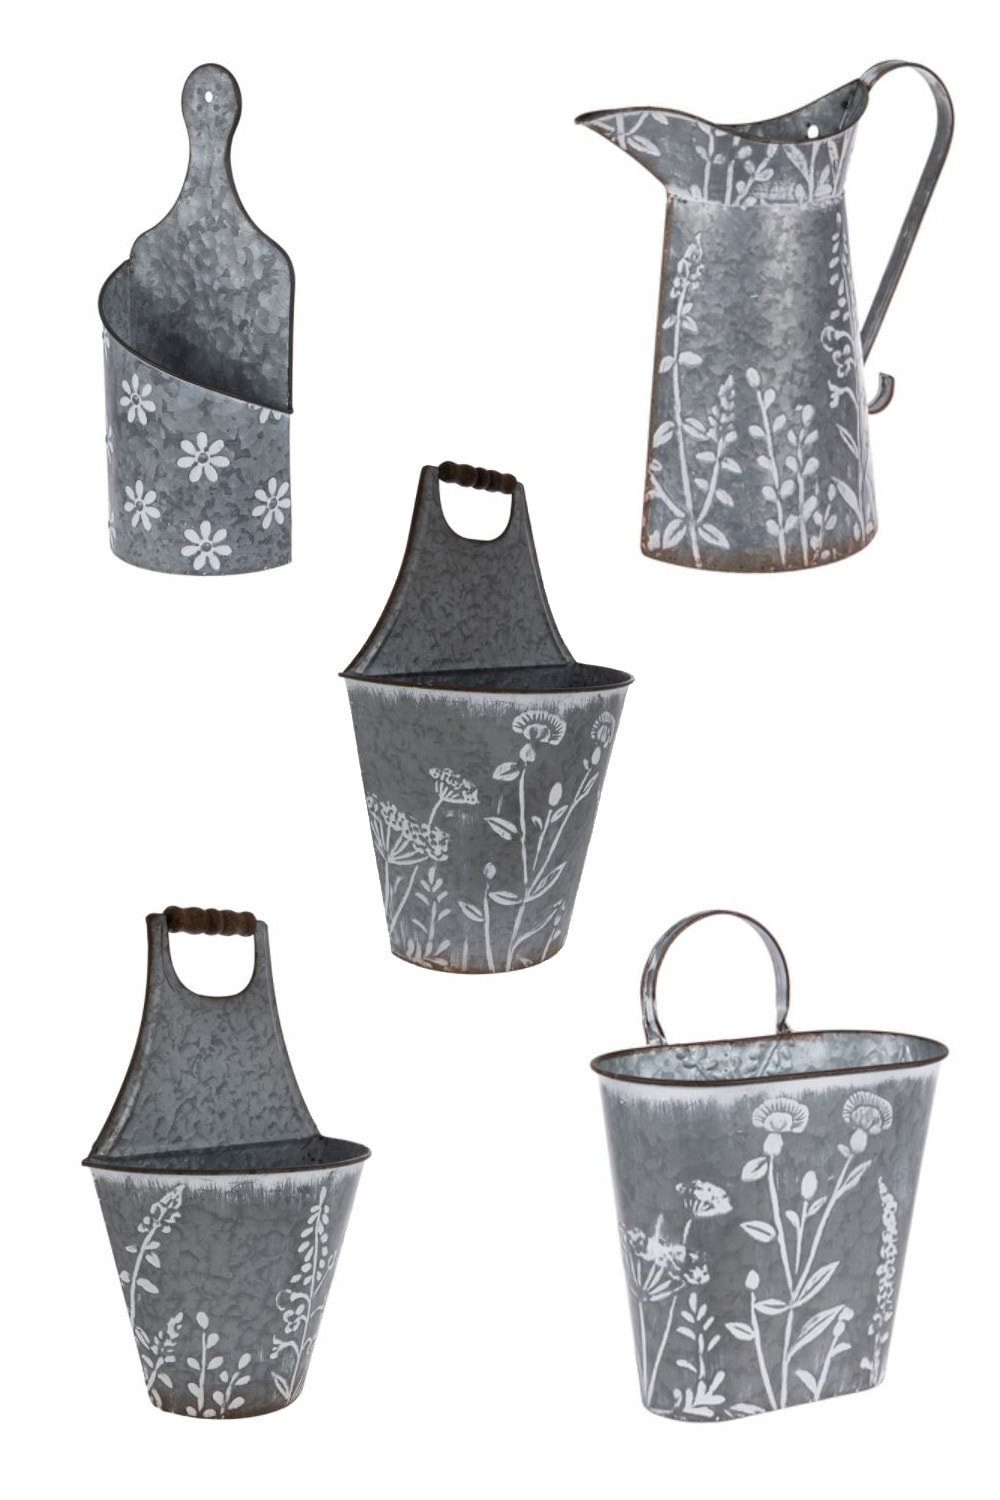 A collage of floral painted containers from Hobby Lobby.